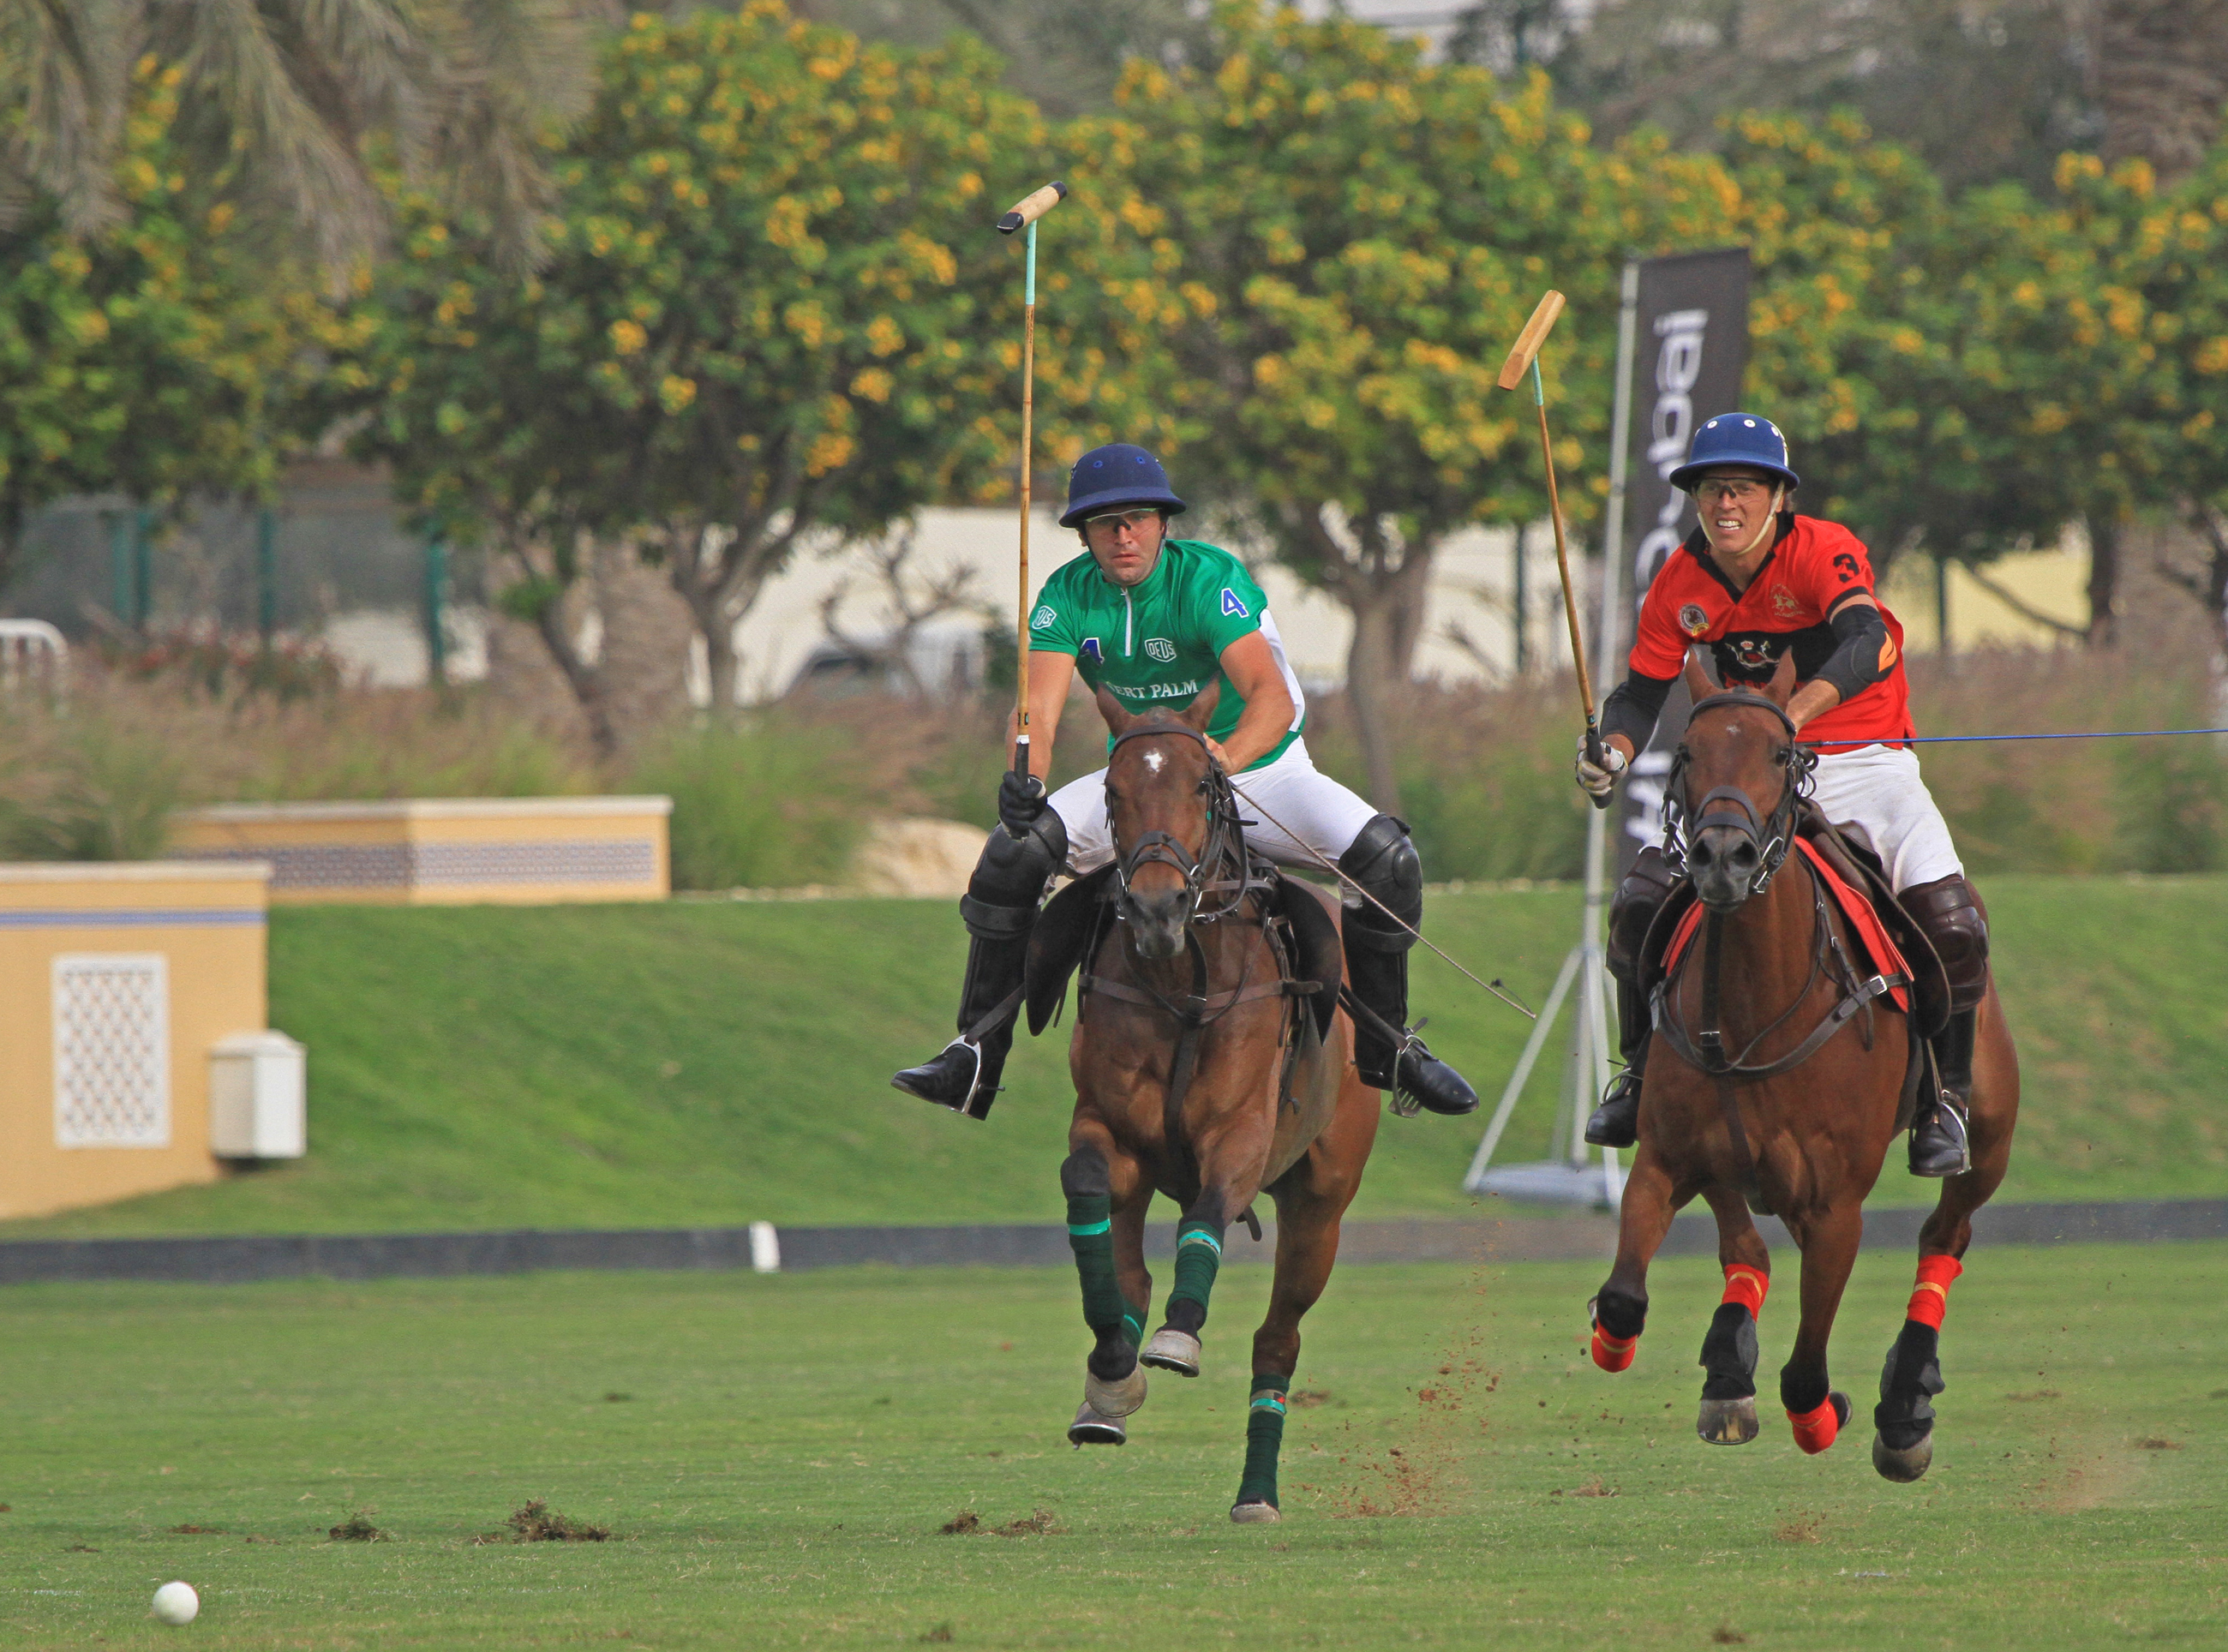 Horse Times Egypt: Equestrian Magazine :News :MAHRA AND BIN DRAI POLO WILL PLAY THE POWER HORSE CUP FINAL AT THE BENTLEY EMIRATES DUBAI POLO GOLD CUP